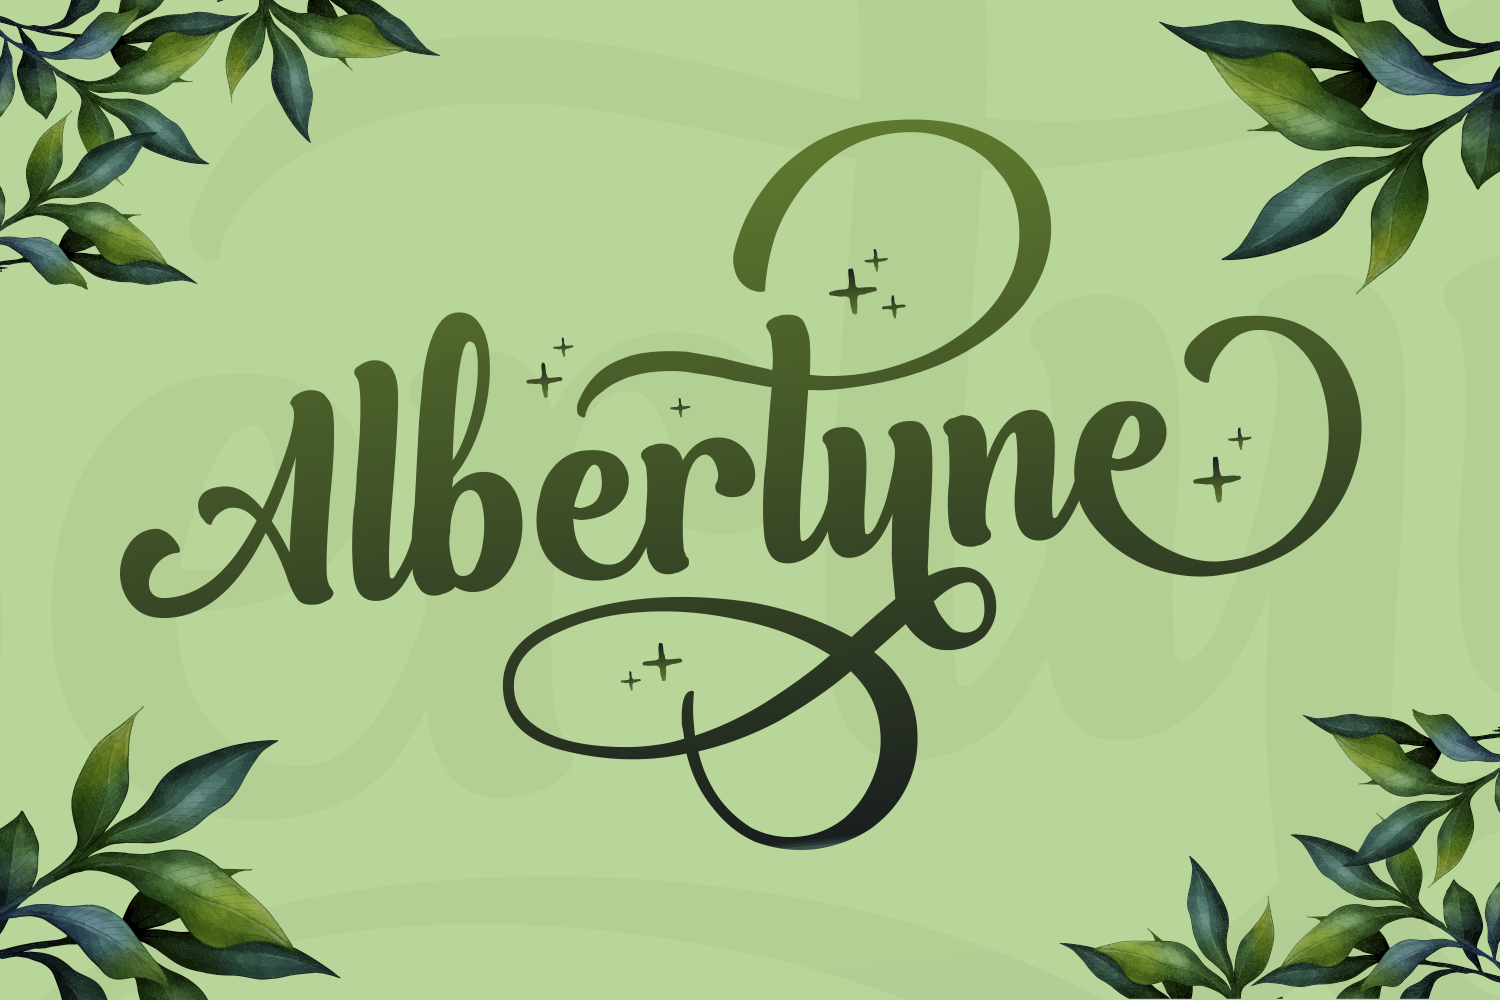 Albertyne Font By Kelik 7ntypes Creative Fabrica In 2020 Cool Fonts Business Card Logo Premium Fonts